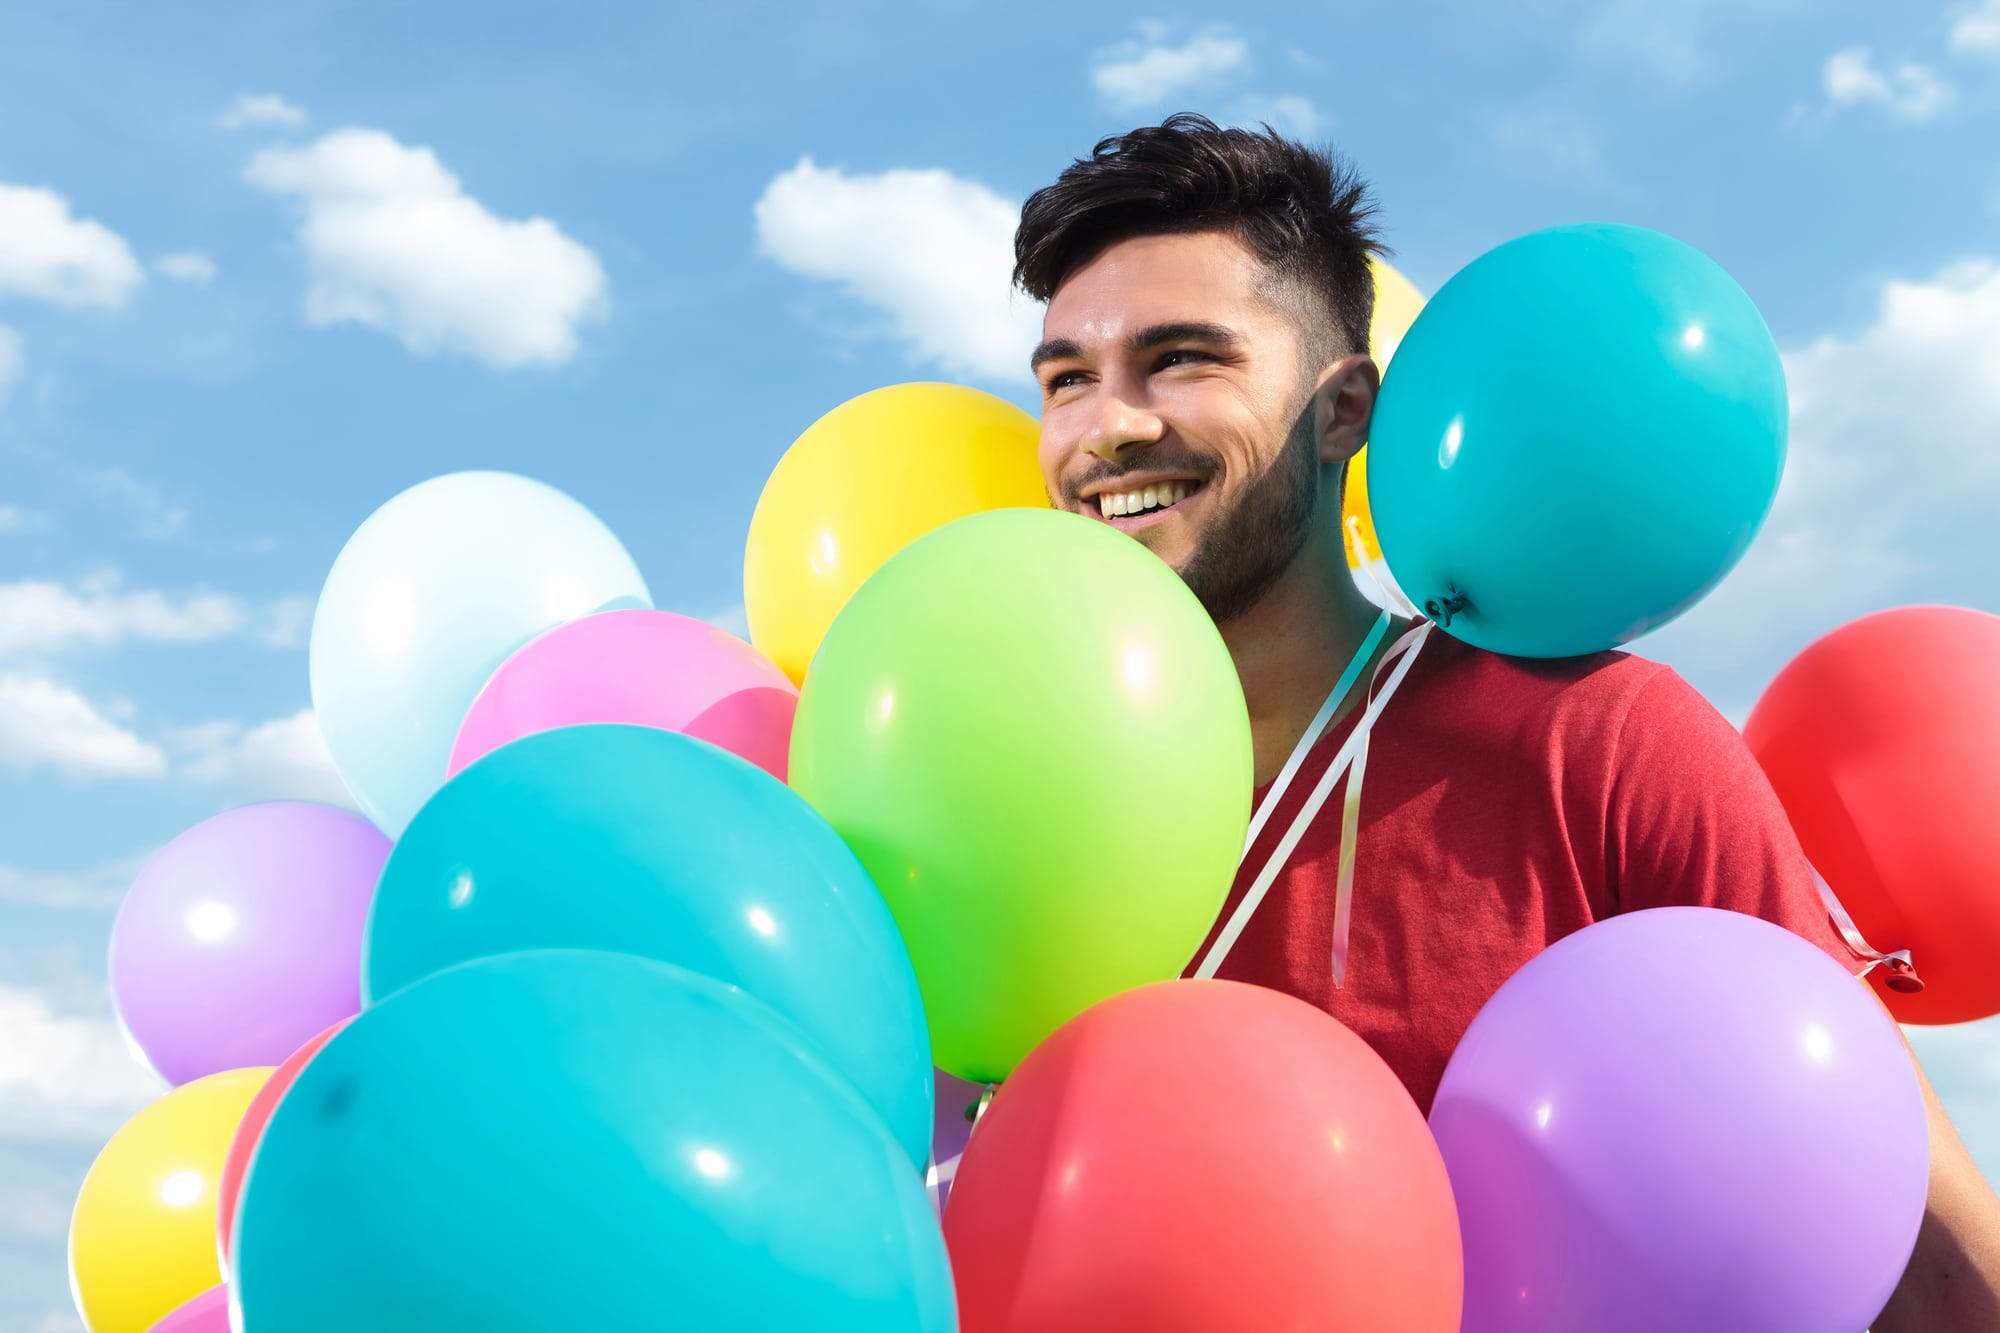 spiritual man with balloons all over him